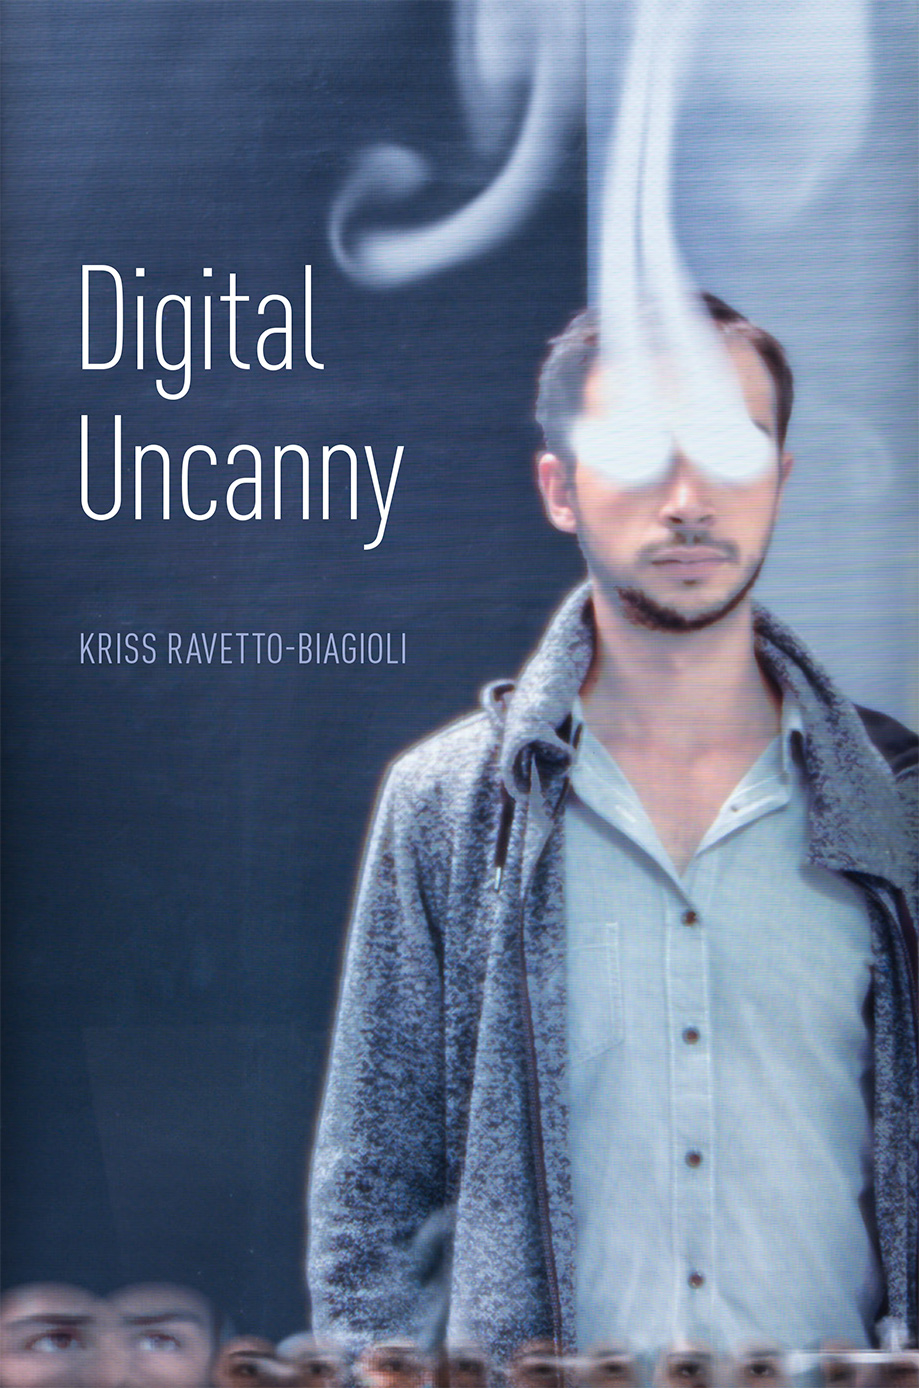 Cover of book Digital Uncanny with man's face erased